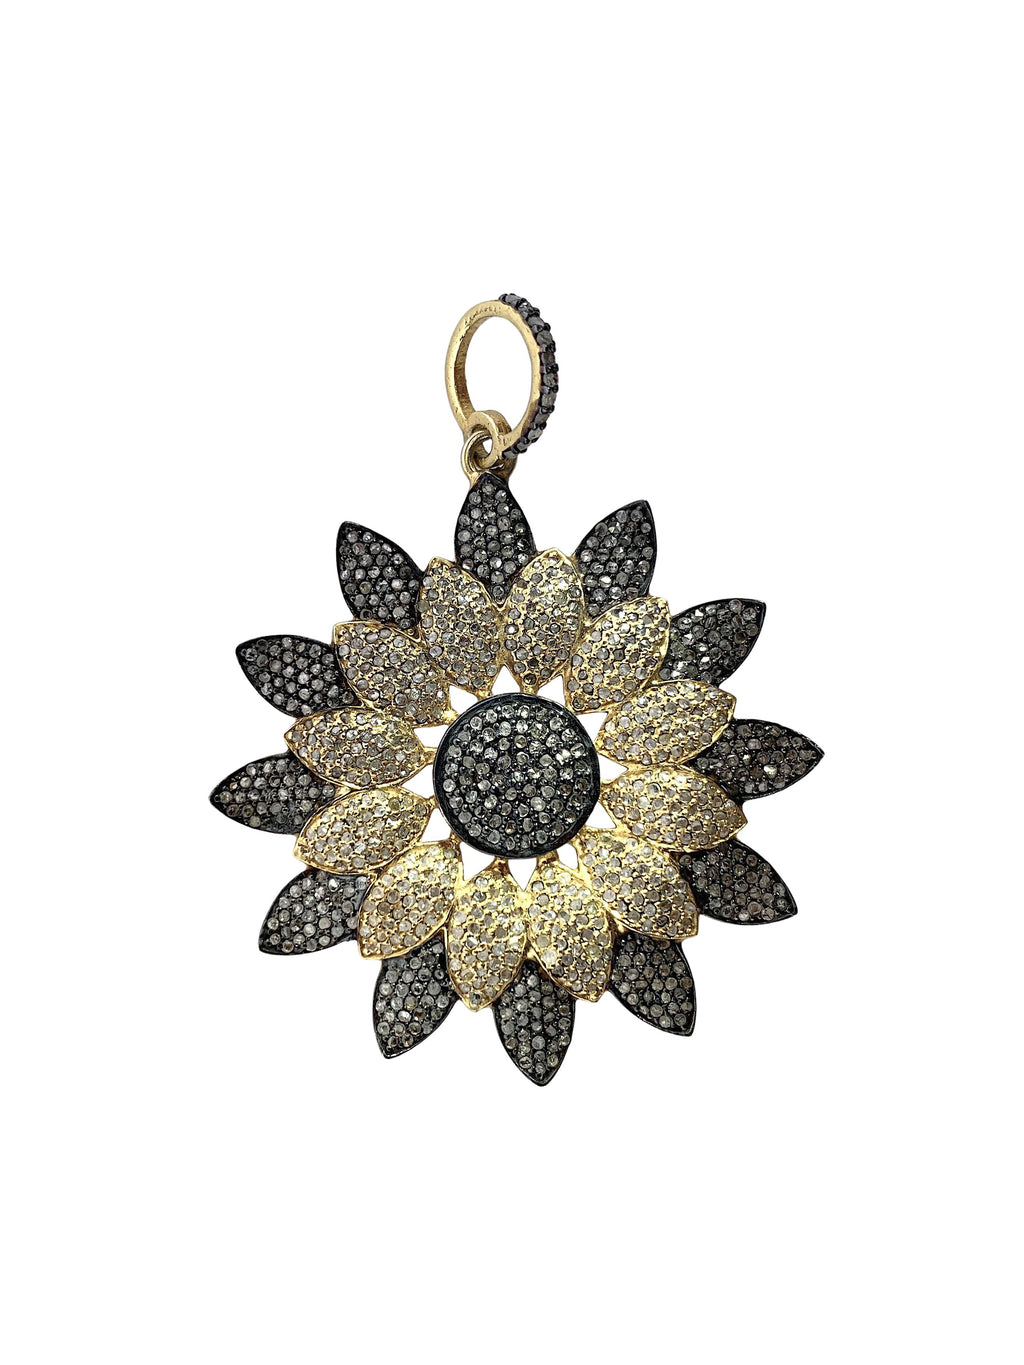 Pave Diamond Flower in Brass and Sterling Silver